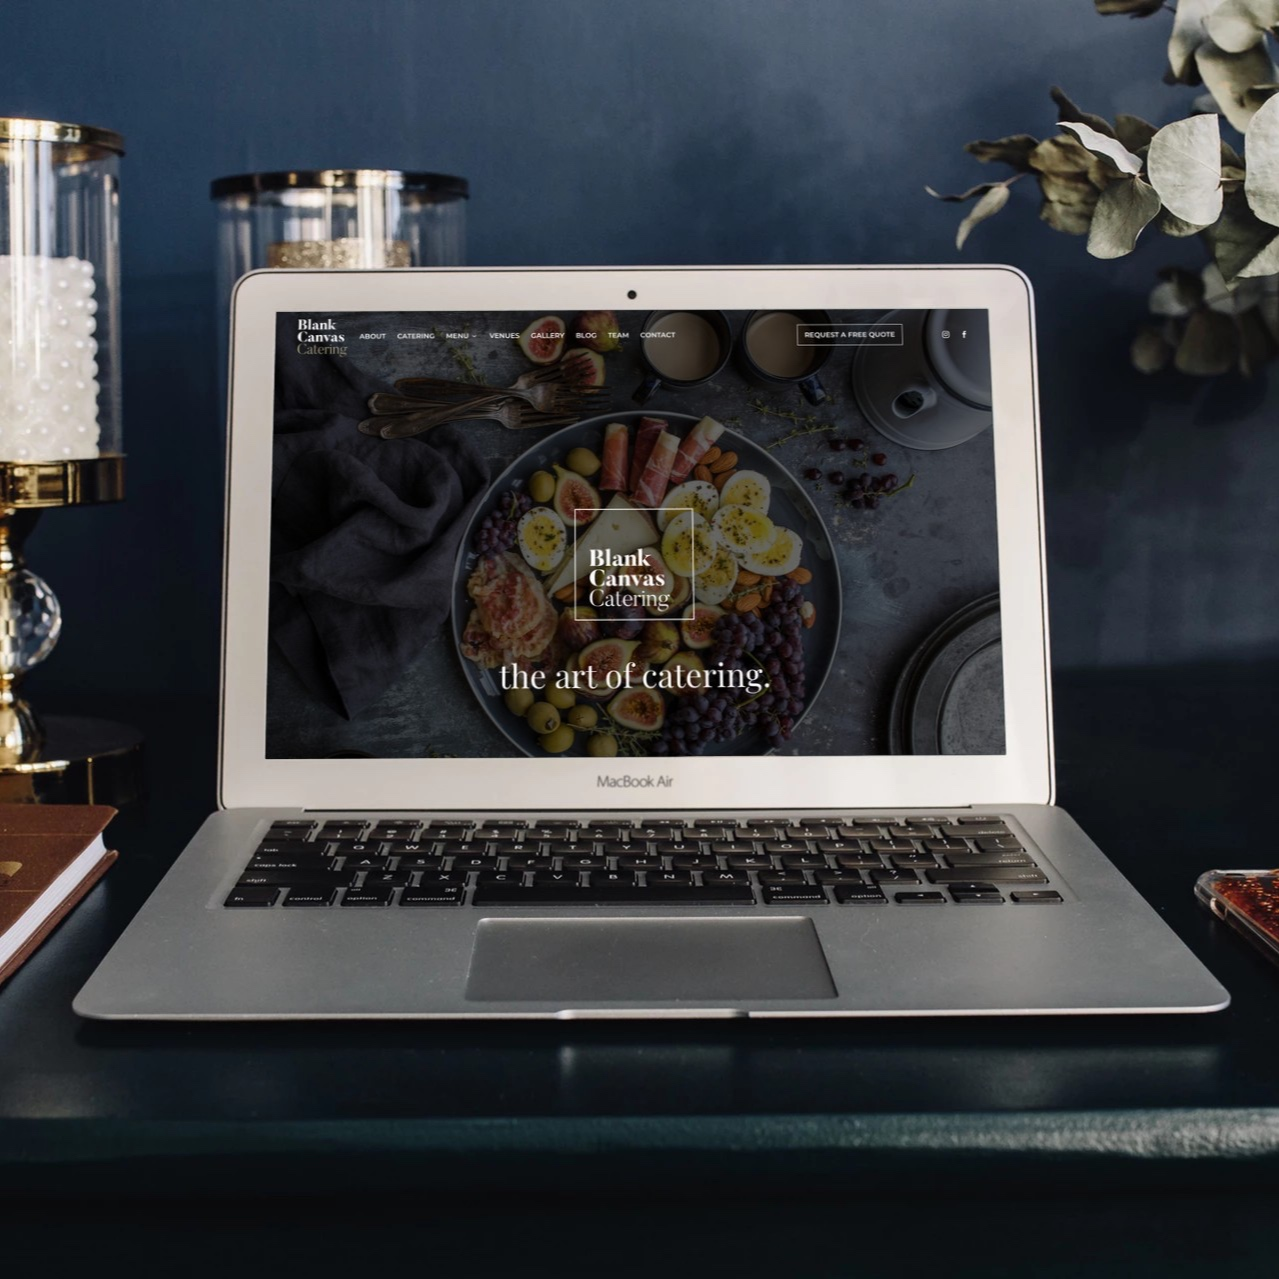 Case Study: Blank Canvas Catering - NEED: When Blank Canvas Catering Co. was conceptualized as an arm of the Joseph Richard Group the goal was to identify and create a website that would stand out amongst the competition and show off the capabilities and variety that the culinary team can offer as well as its ability to service all types of events.SOLUTION: We created a clean and creative website in Word Press for Blank Canvas that highlighted their various menu offerings, venue partners as well as the team that operates the business.RESULTS: Since the website has launched, their business has tripled, and their web traffic has grown month on month and continues to rise.